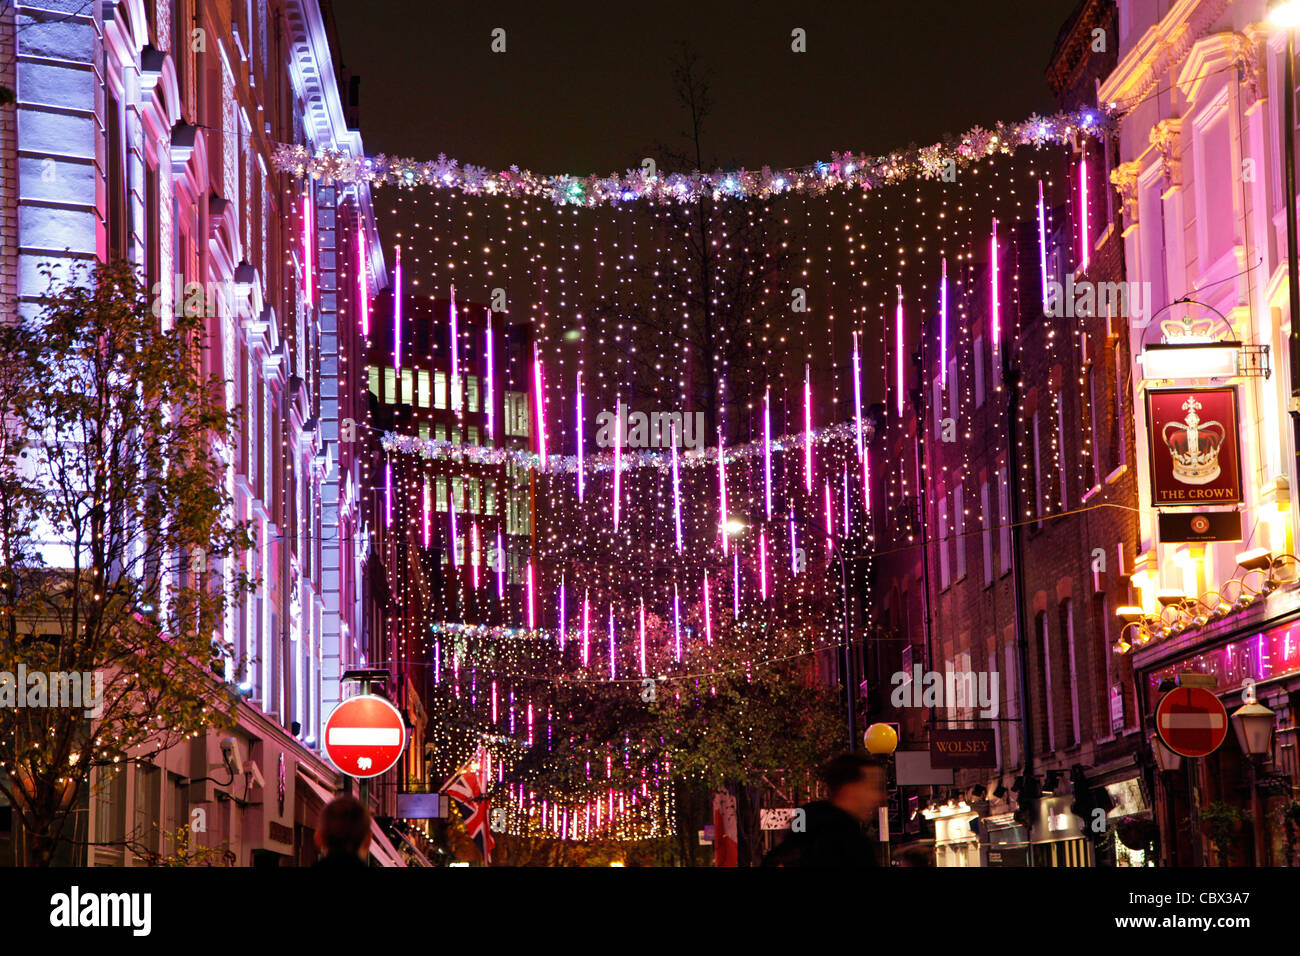 Pink Christmas Lights And Decorations At Seven Dials In Covent Garden Stock Photo Alamy